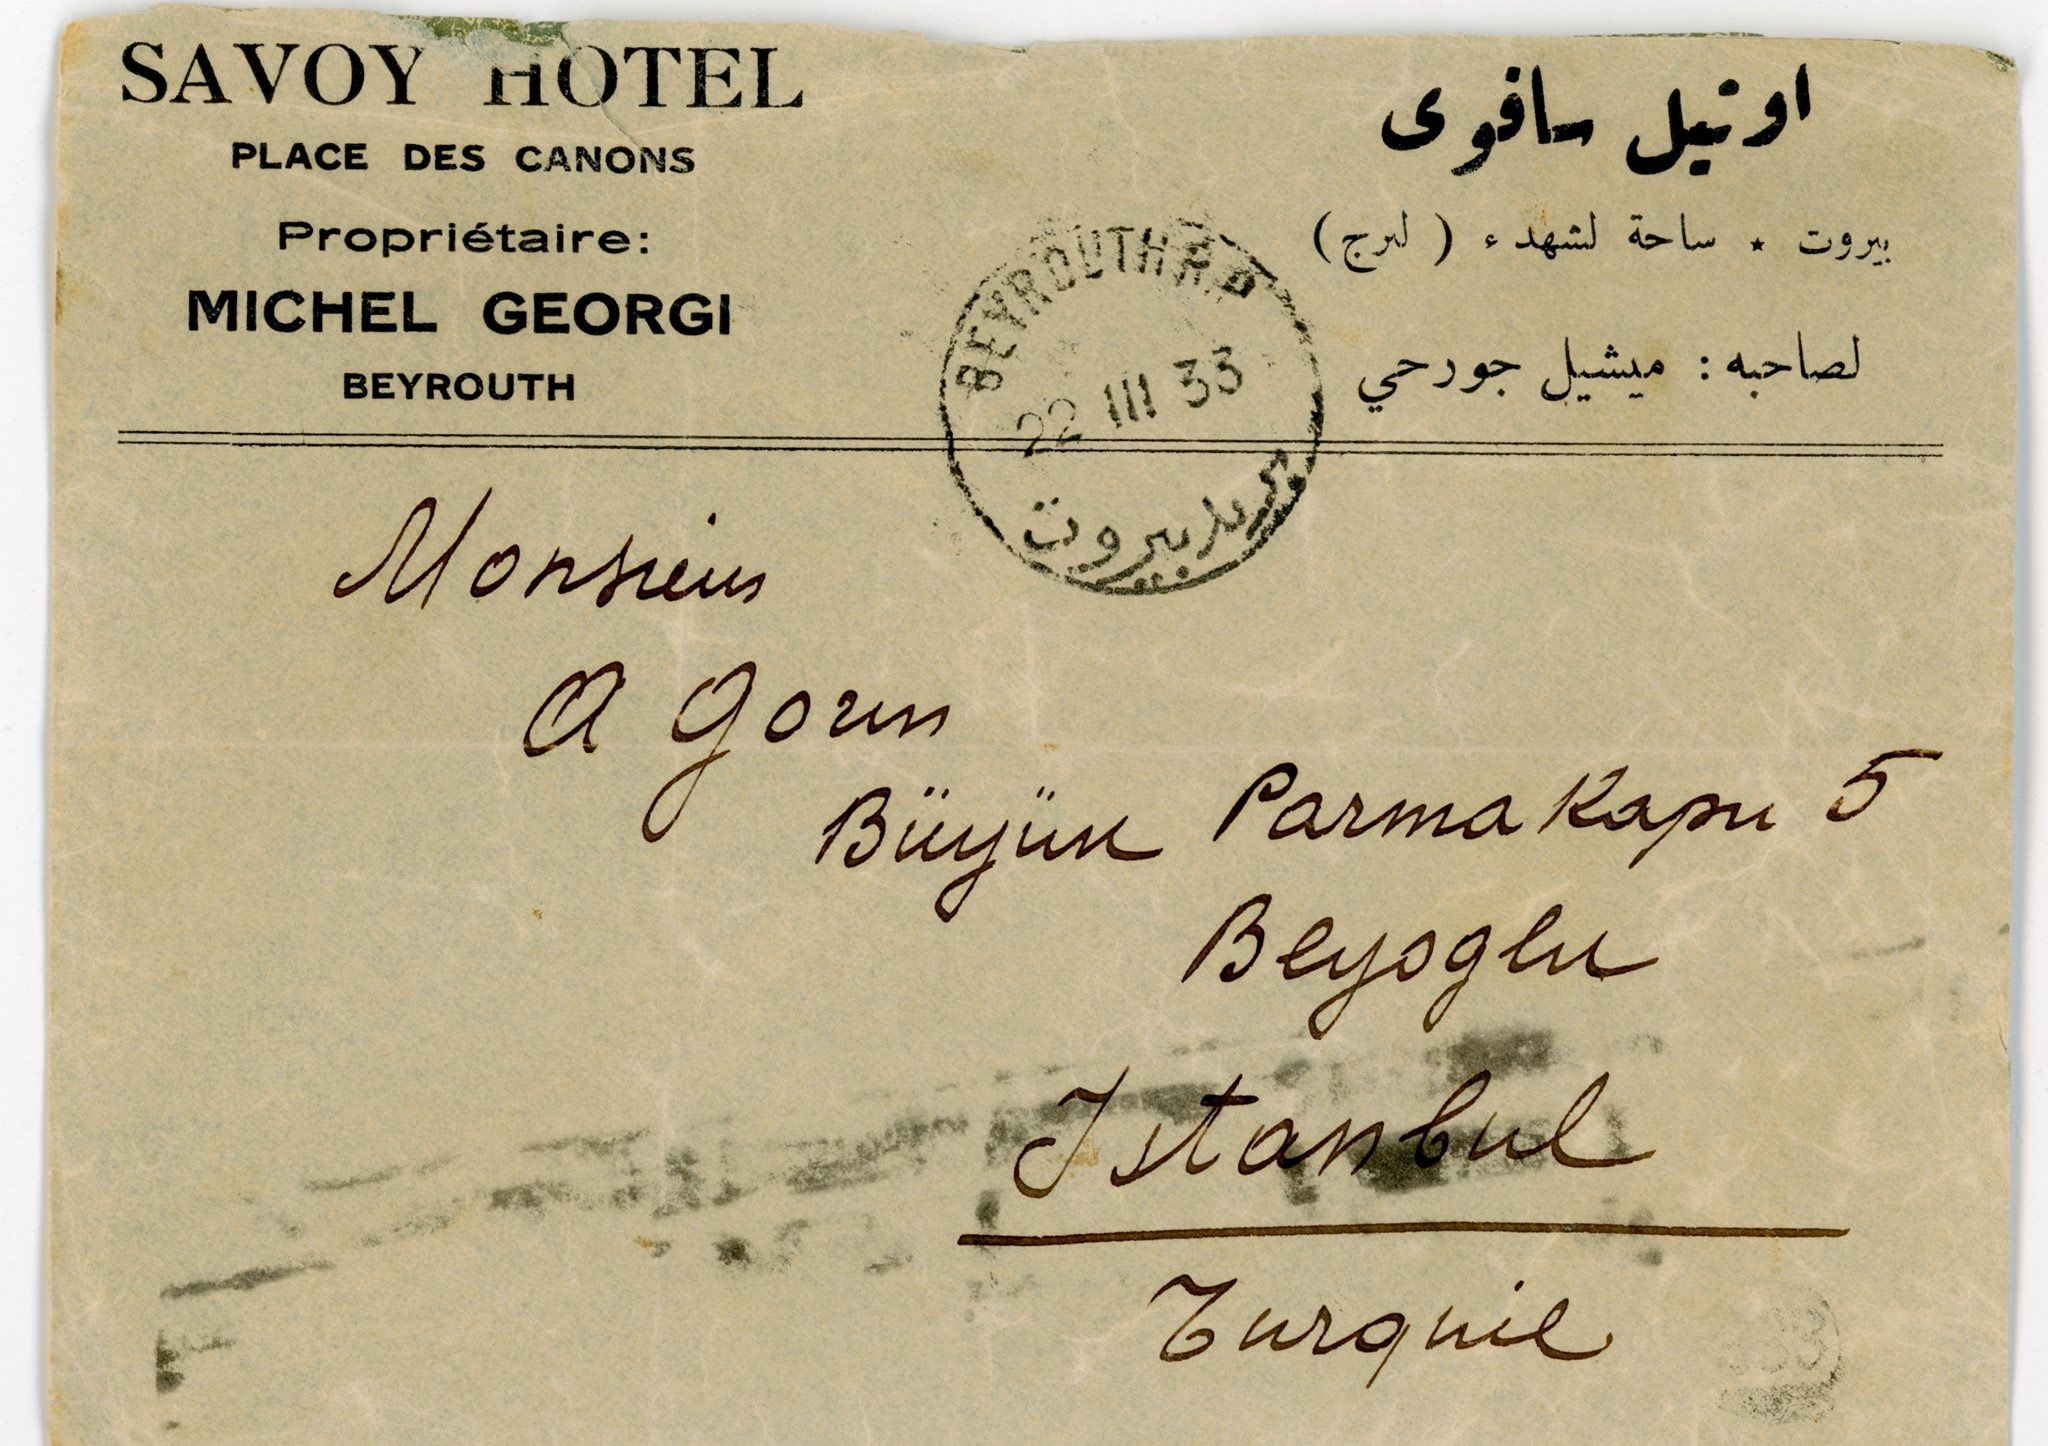 Pin By Abbas Nassereddine On Hotel Ads Promotional Prints Photos 20th Century Beirut Lebanon Hotel Ads Old Postcards Beirut